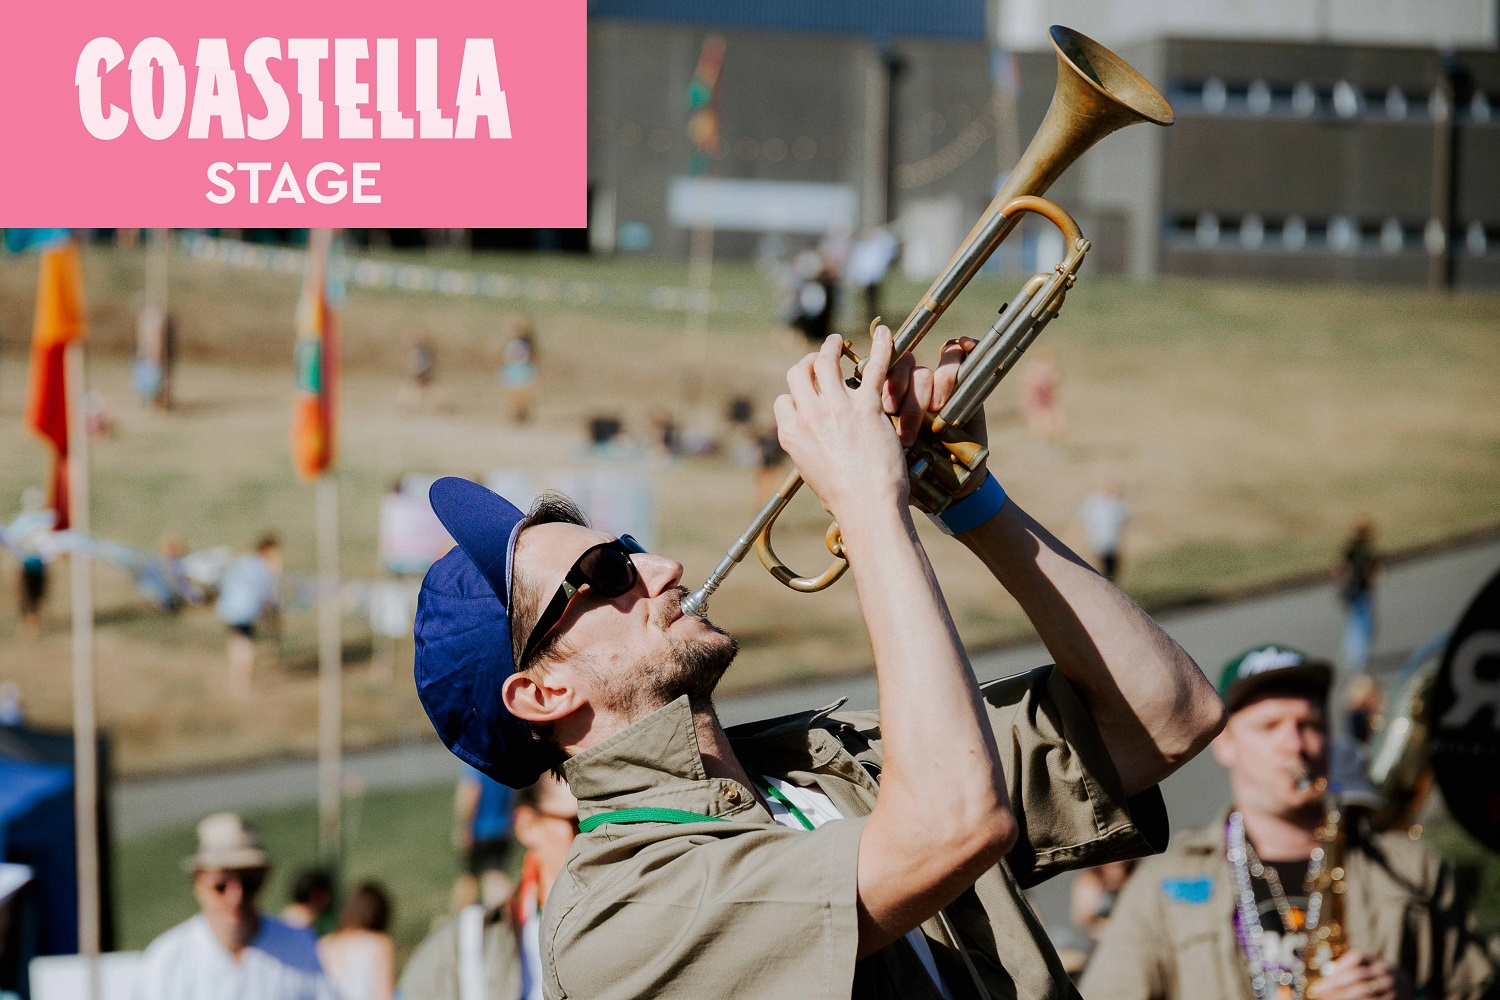 KFF COASTELLA Stage